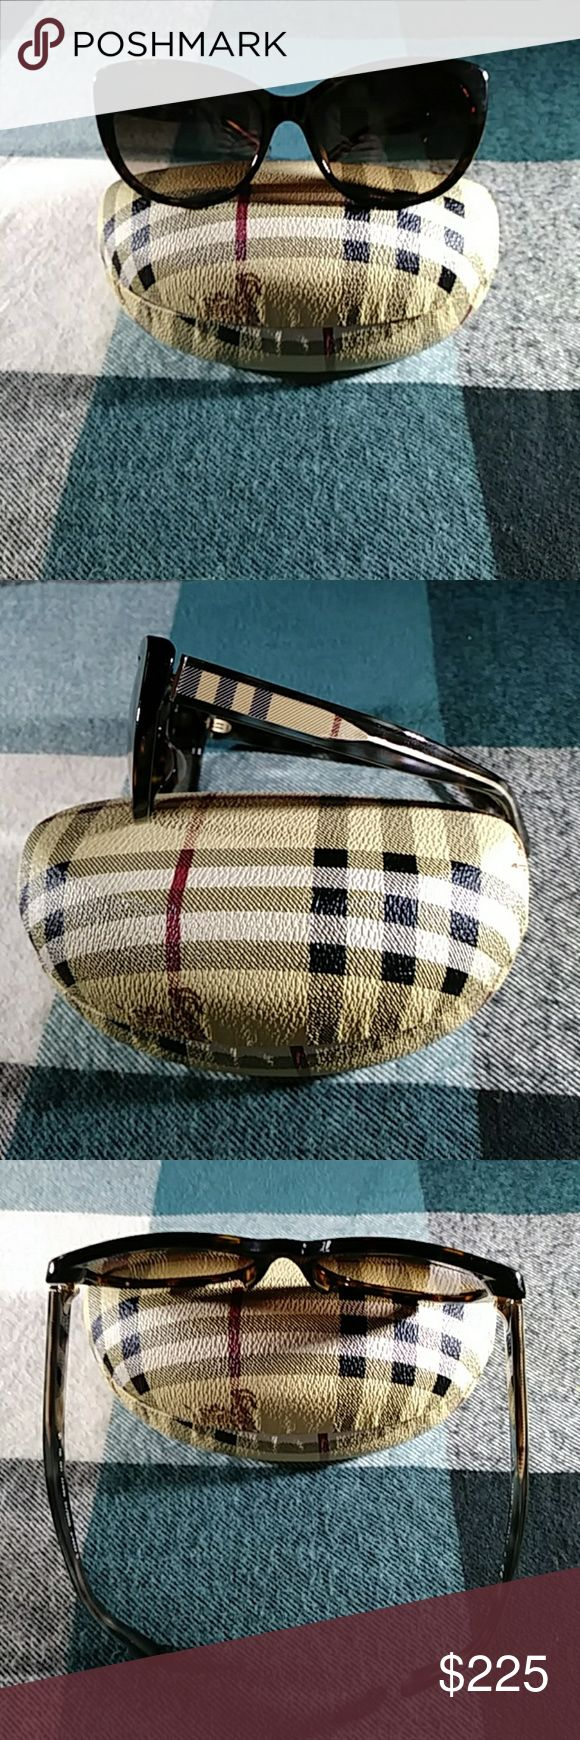 🇬🇧Beautiful Burberry Sunglasses w/case!! 🇬🇧Gorgeous cat eye sunglasses by Burberry. This item comes with a beautiful hard shell case. Tortoise shell. Nova Check print on sides. These are preowned but in excellent, like-new condition. 1 tiny scratch on right lens that does not affect vision and is not noticable unless you inspect them closely. I was unaware of scratch until I inspected them to list. Case is gorgeous and like-new as well. ✔Every purchase receives an amazing free 🎁…